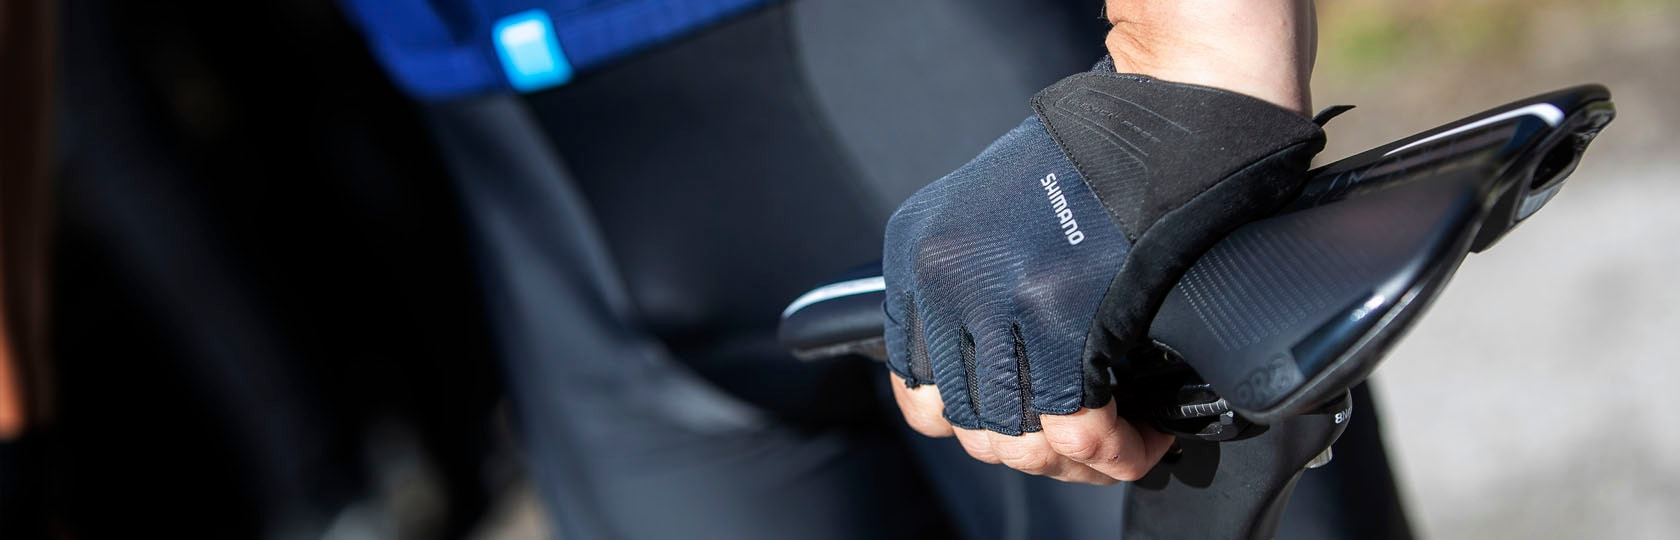 19SS_apparel_gloves_Line_up_hero-image